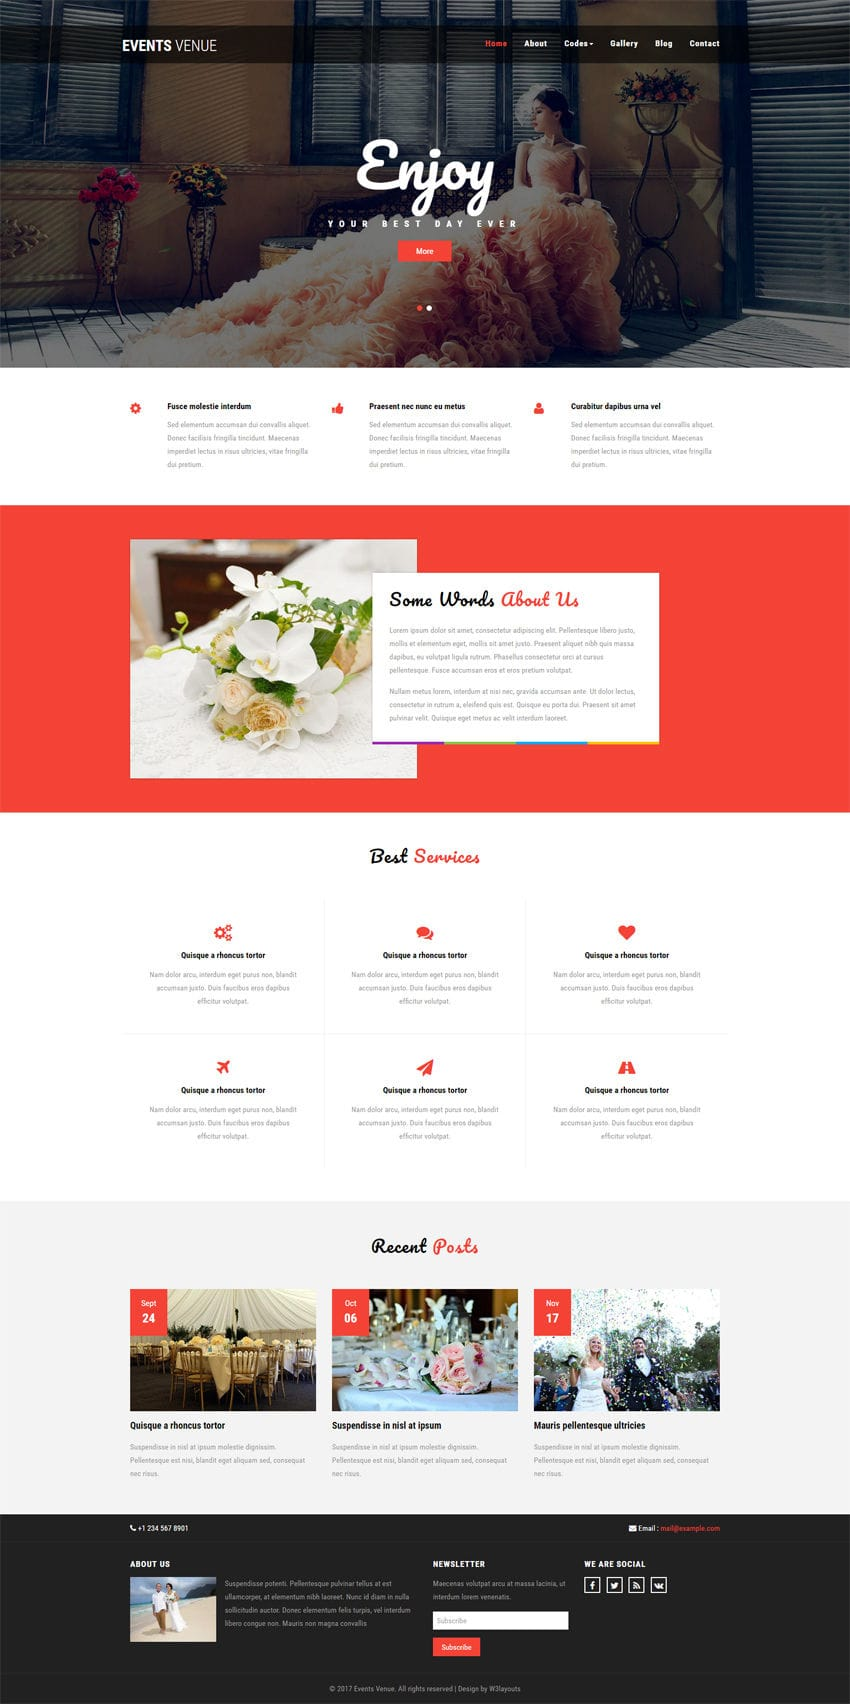 events-venue_full_Free02-02-2017_159774961 Online Bootstrap Form Designer on nice contact, input template, apply button, no boxes, inline label, vertical horizontal, general detail collection, control types,